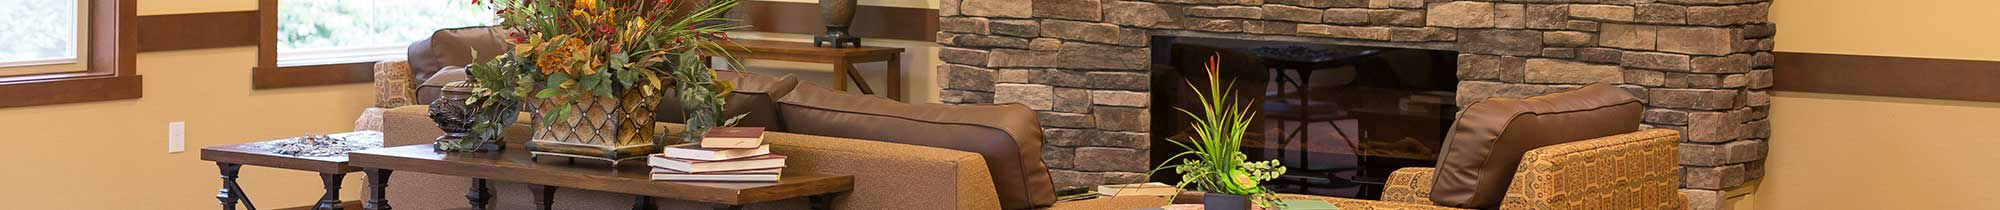 The Lodge at Mallard's Landing offers memory care options for it's residents.